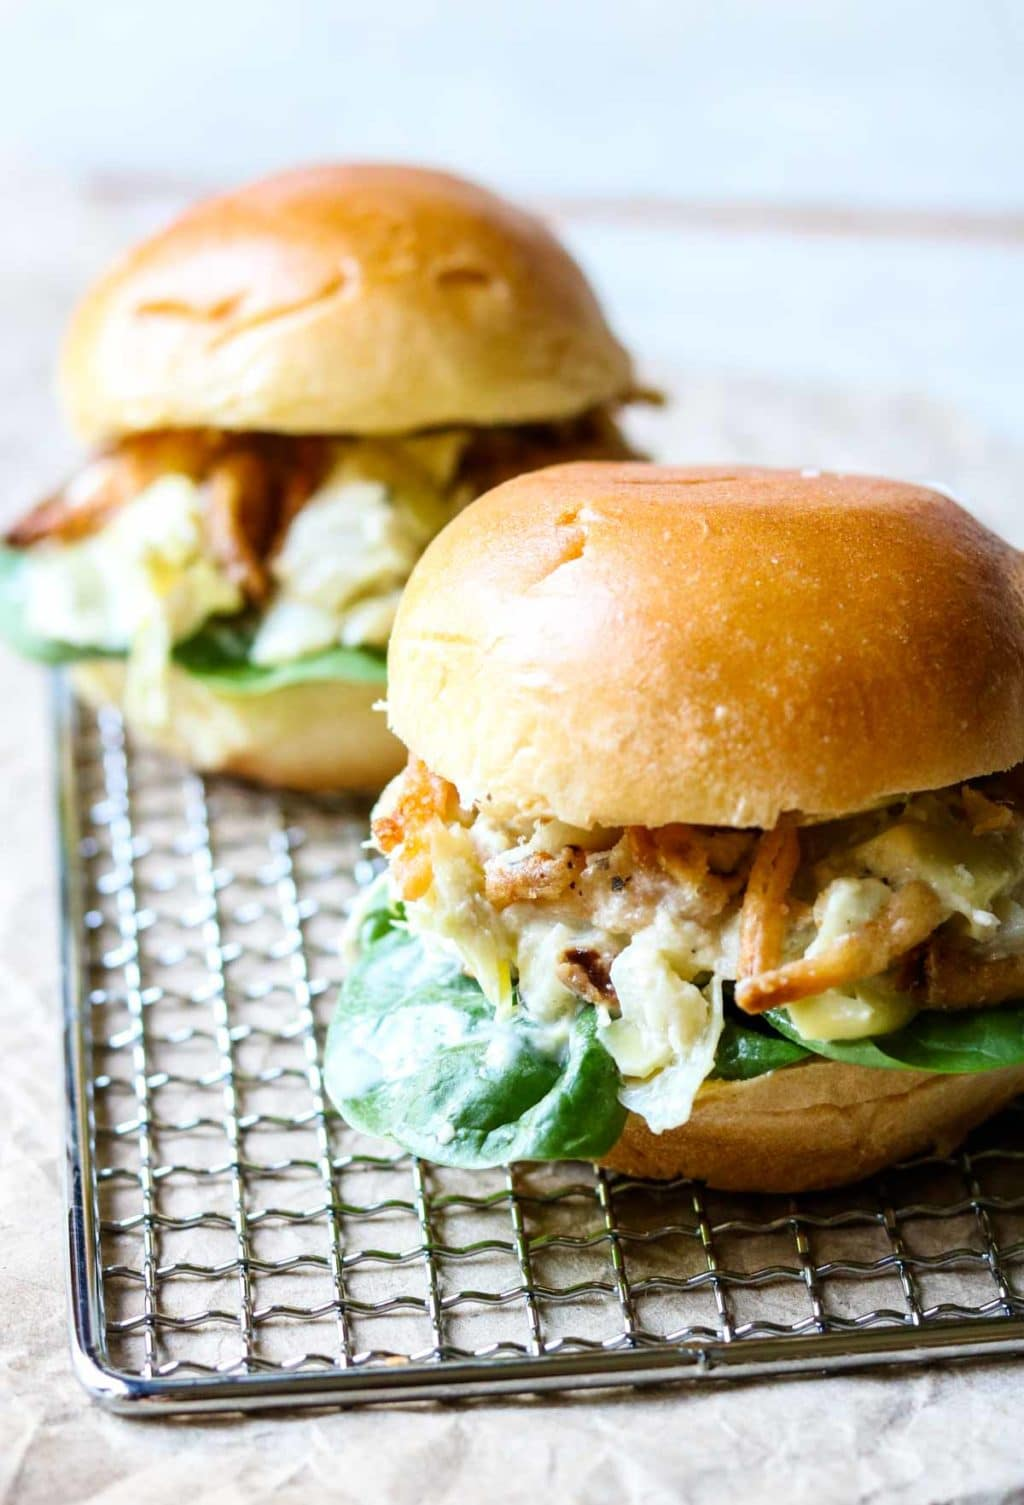 Two Chicken Salad Sandwiches on brioche rolls sitting on a silver grate